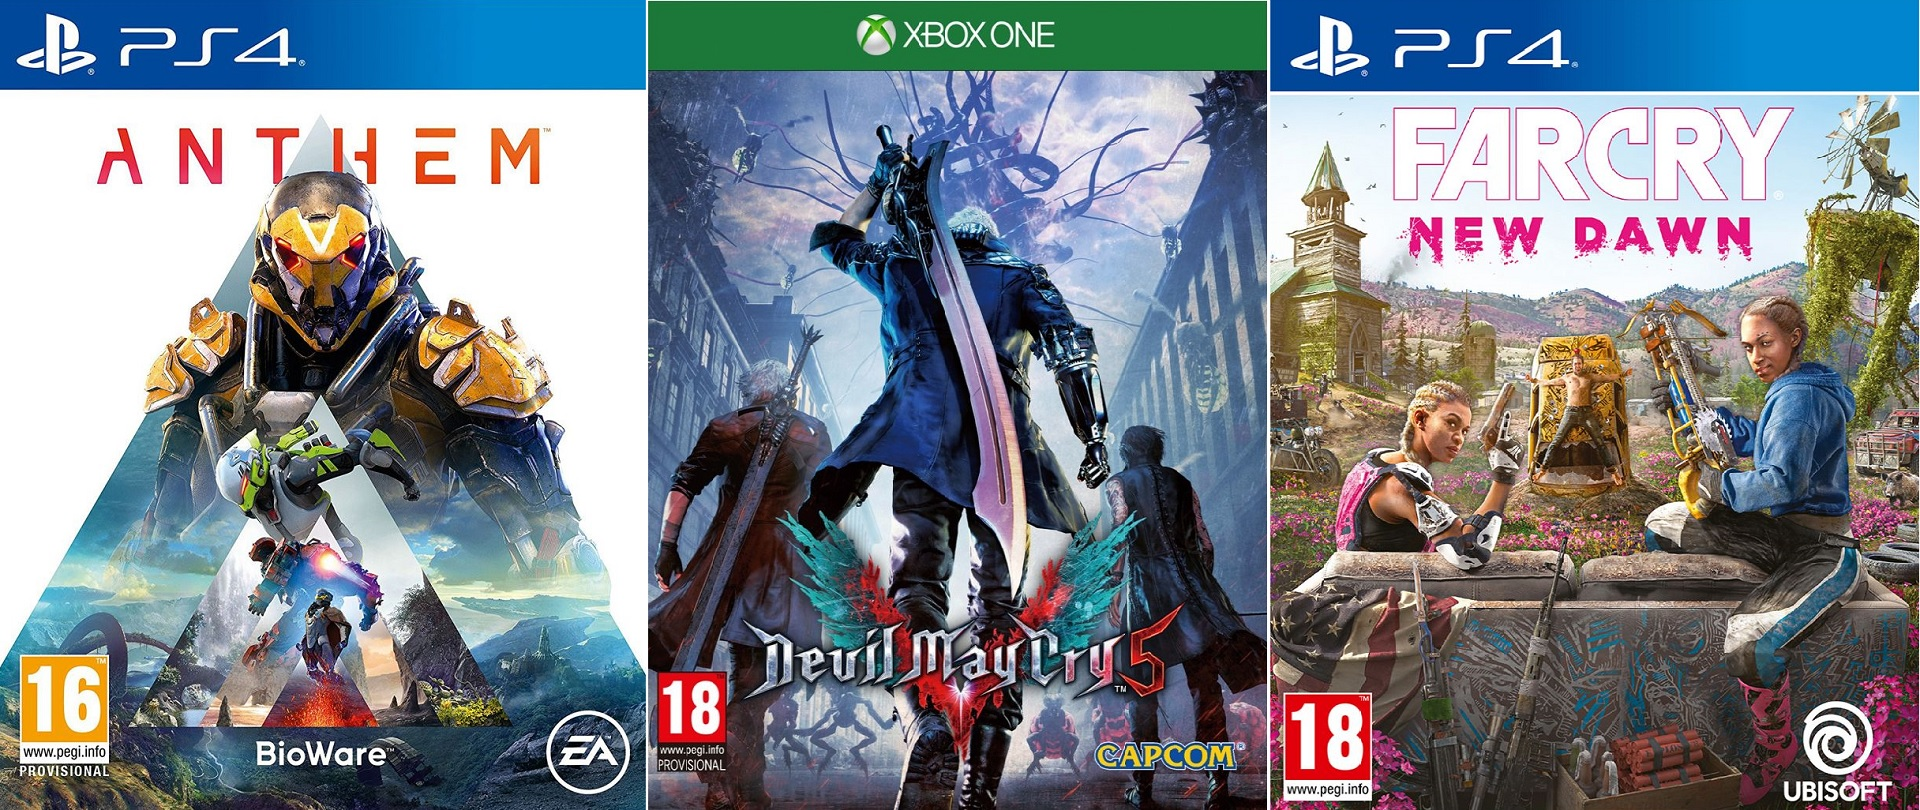 Anthem Devil May Cry 5 Crackdown 3 Metro Exodus Far Cry New Dawn And More New Releases Are In Target S Buy 2 Get 1 Free Sale Vg247